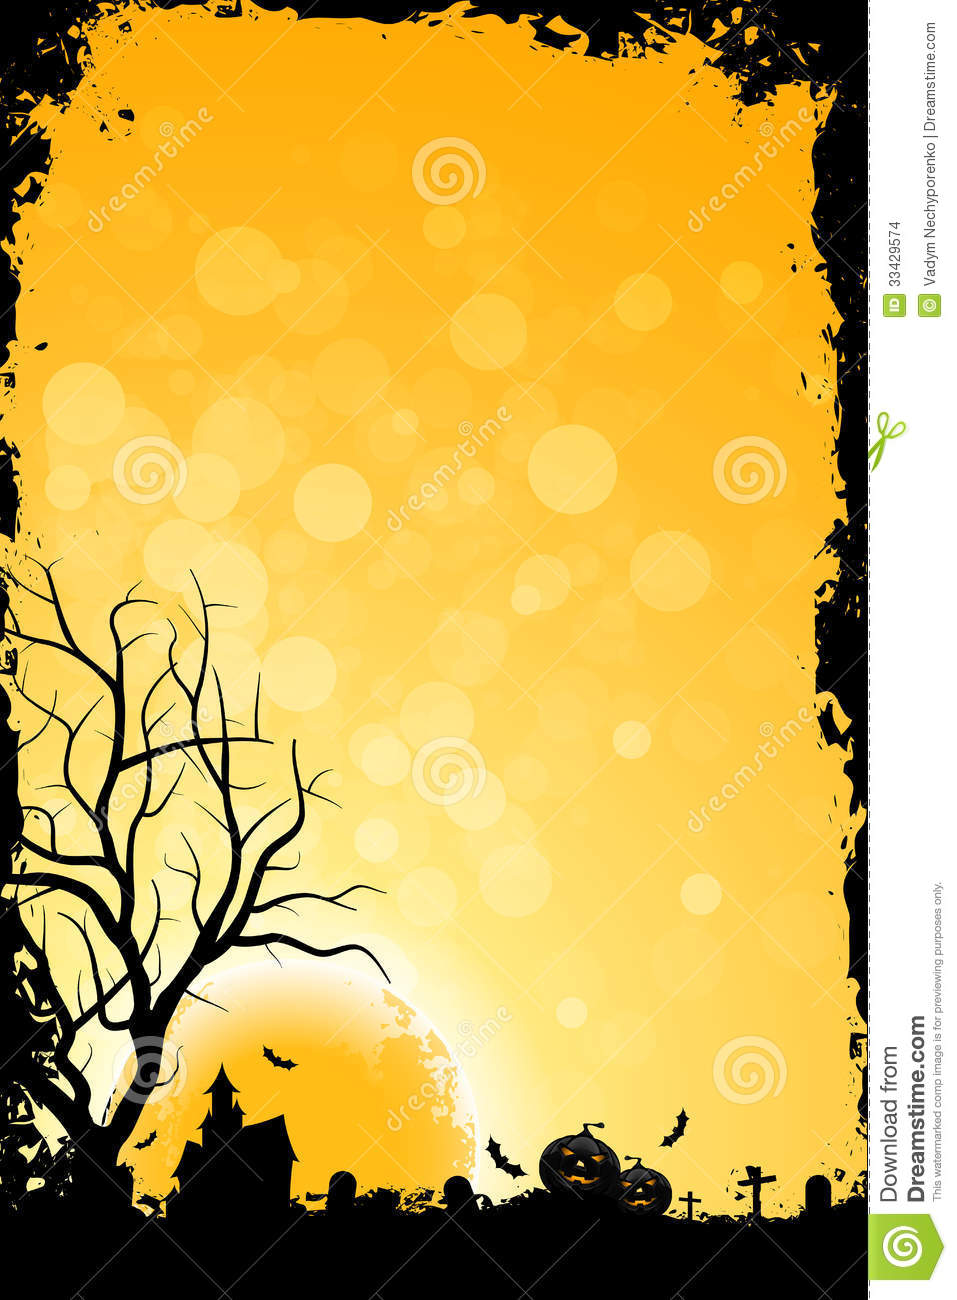 Grunge Background For Halloween Party Stock Images - Image: 33429574